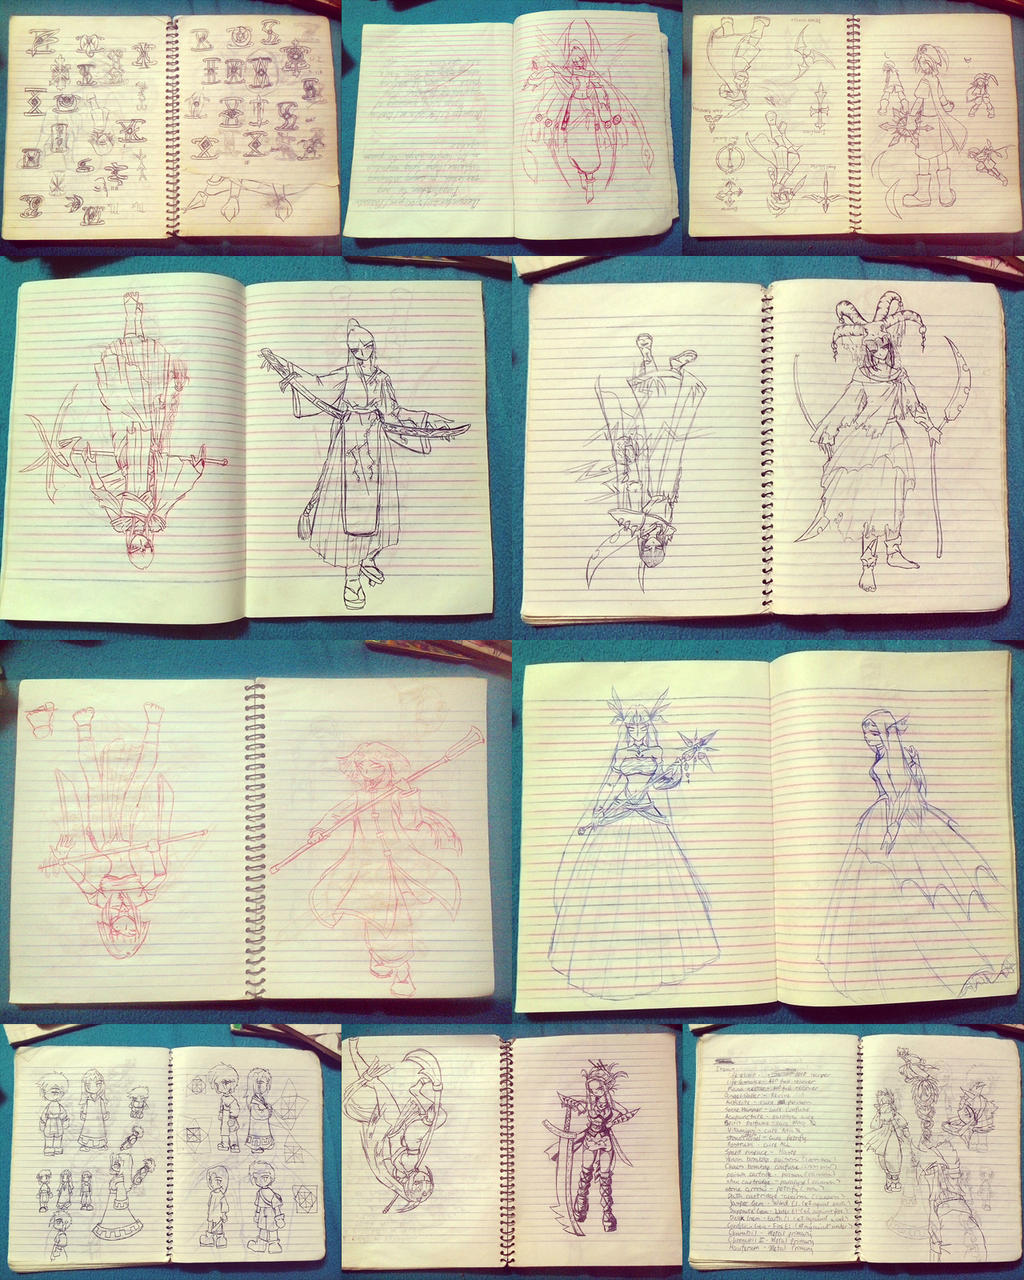 Highschool Notebook Doodles 1 by Ylden on DeviantArt